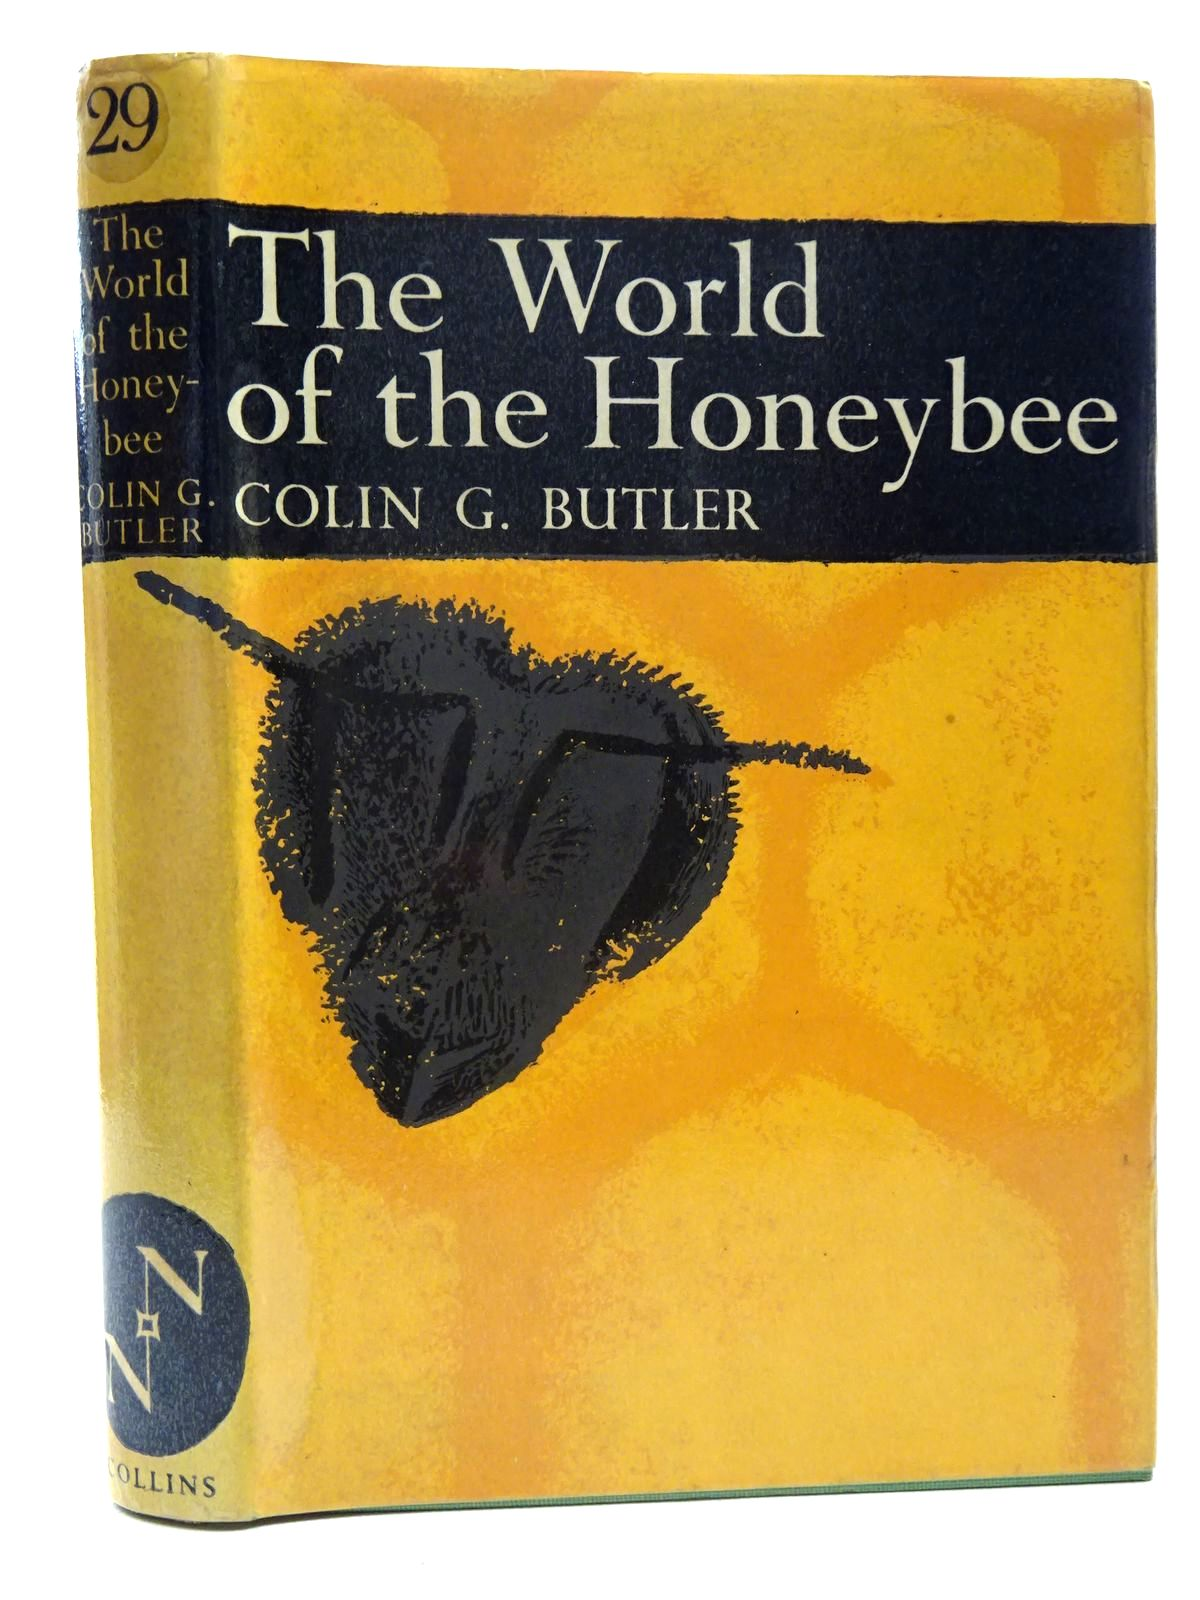 Photo of THE WORLD OF THE HONEYBEE (NN 29) written by Butler, Colin G. published by Collins (STOCK CODE: 1816292)  for sale by Stella & Rose's Books